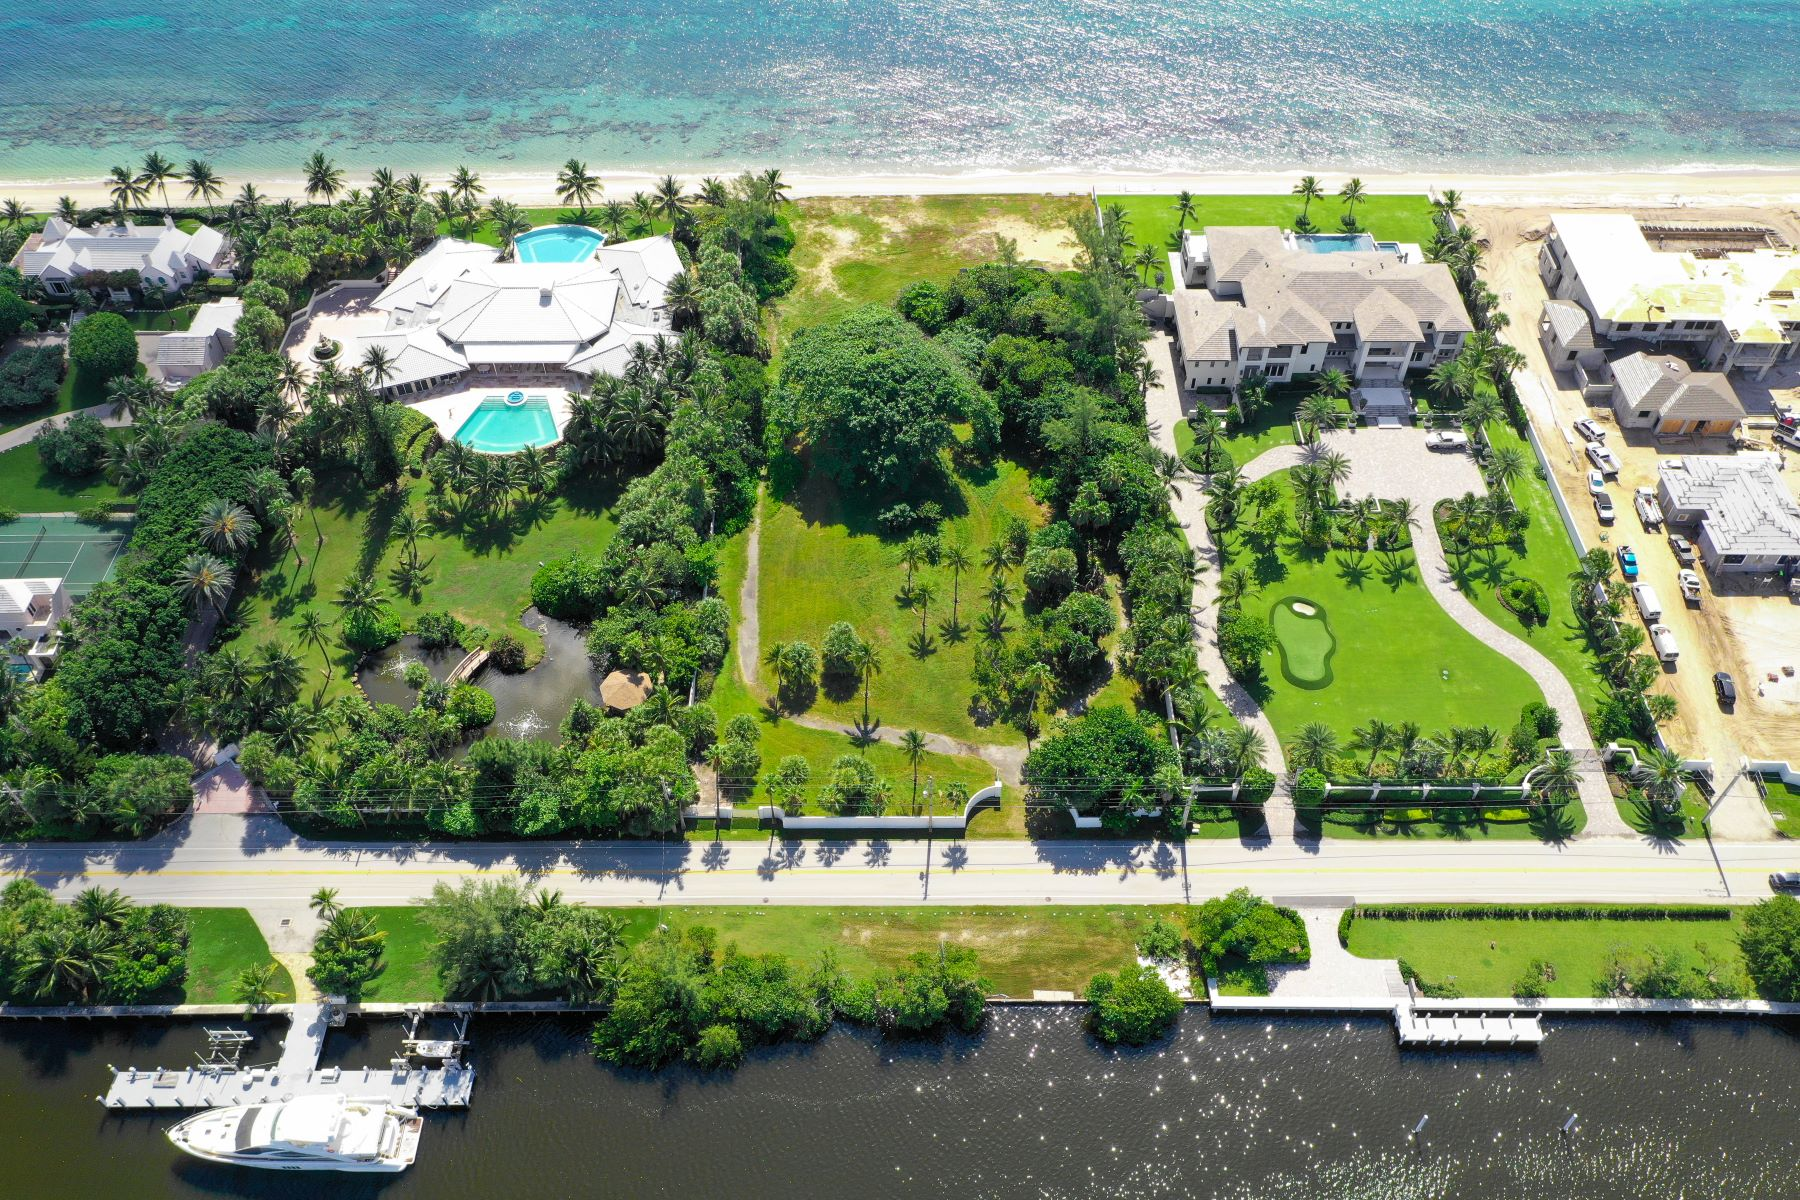 Land for Sale at Direct Ocean and Intracoastal Parcel 980 S Ocean Blvd, Manalapan, Florida 33462 United States